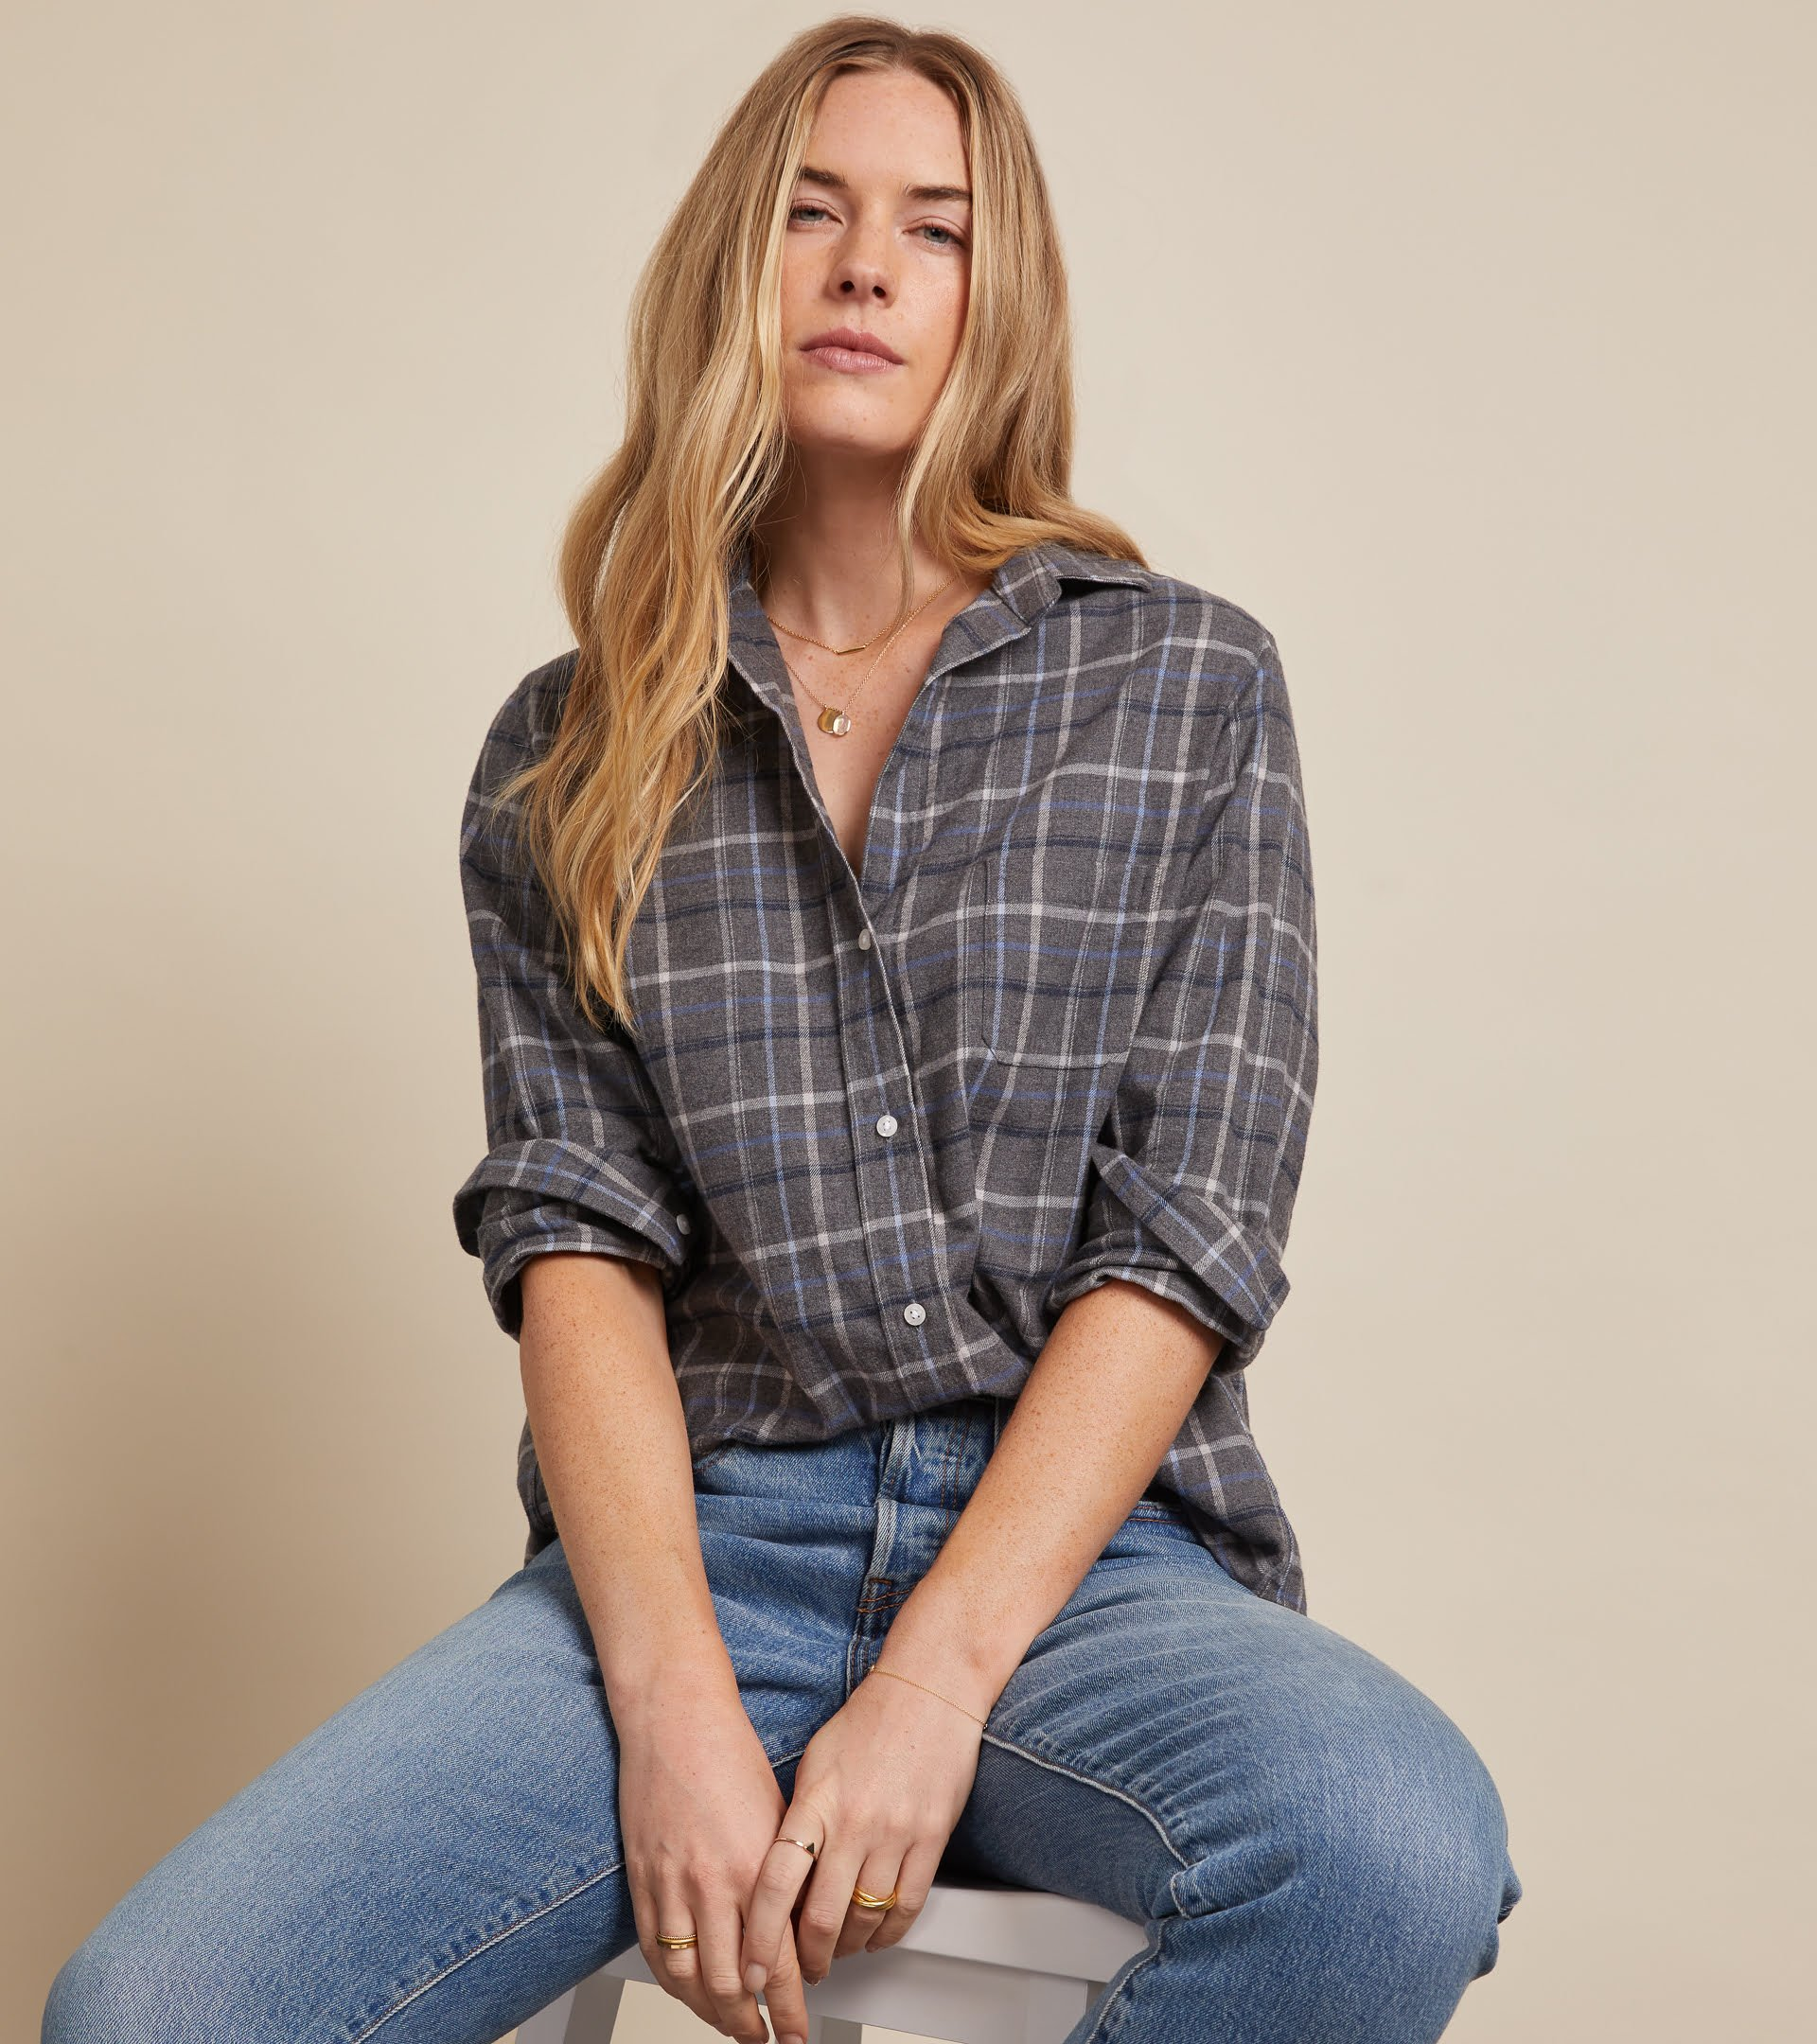 The Hero Button-Up Shirt Gray, Blue, White and Black Plaid, Feathered Flannel view 1